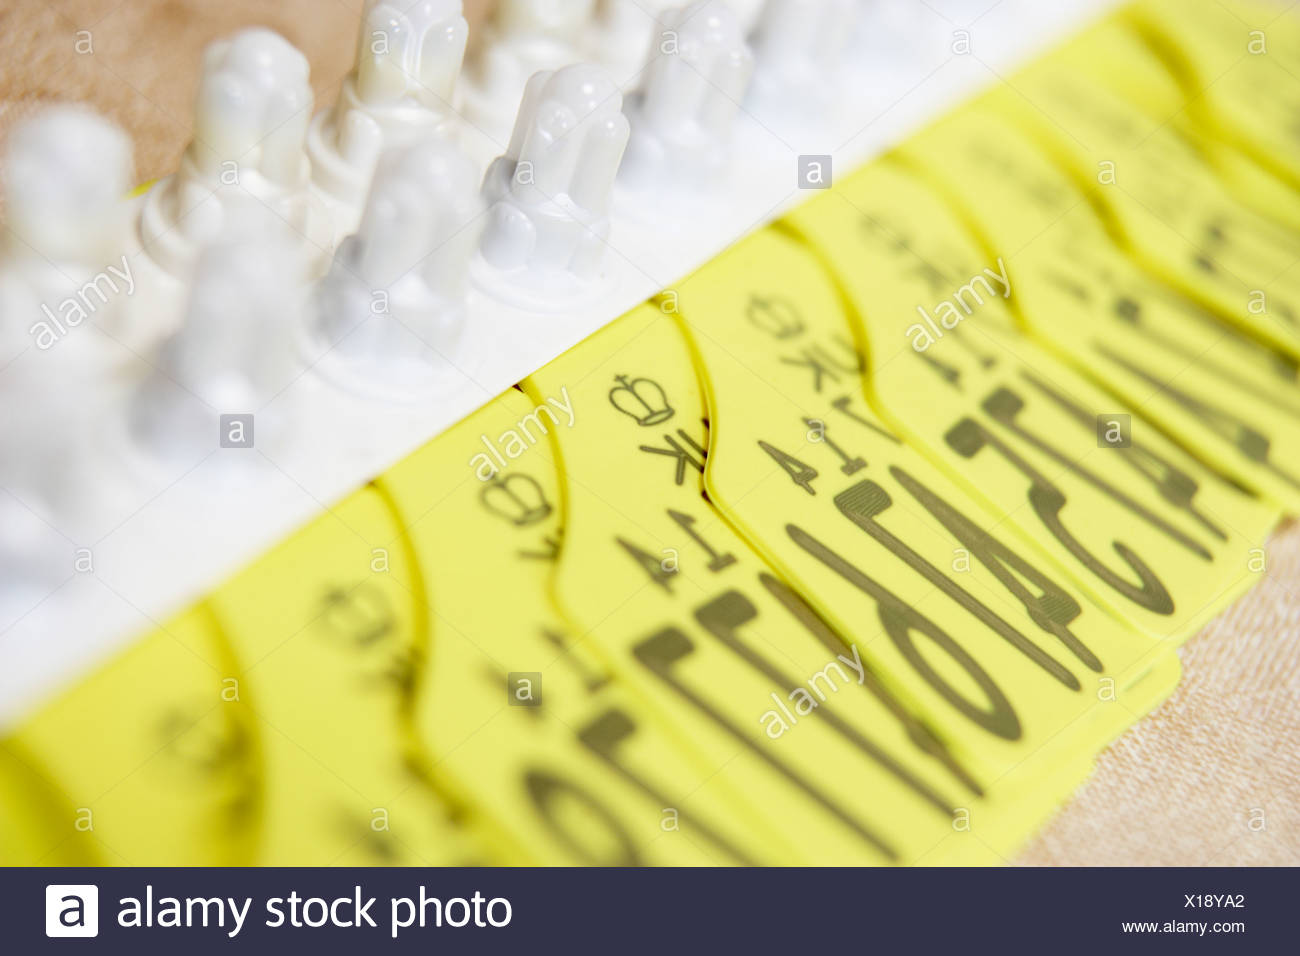 Identification Tags For Cattle - Stock Image